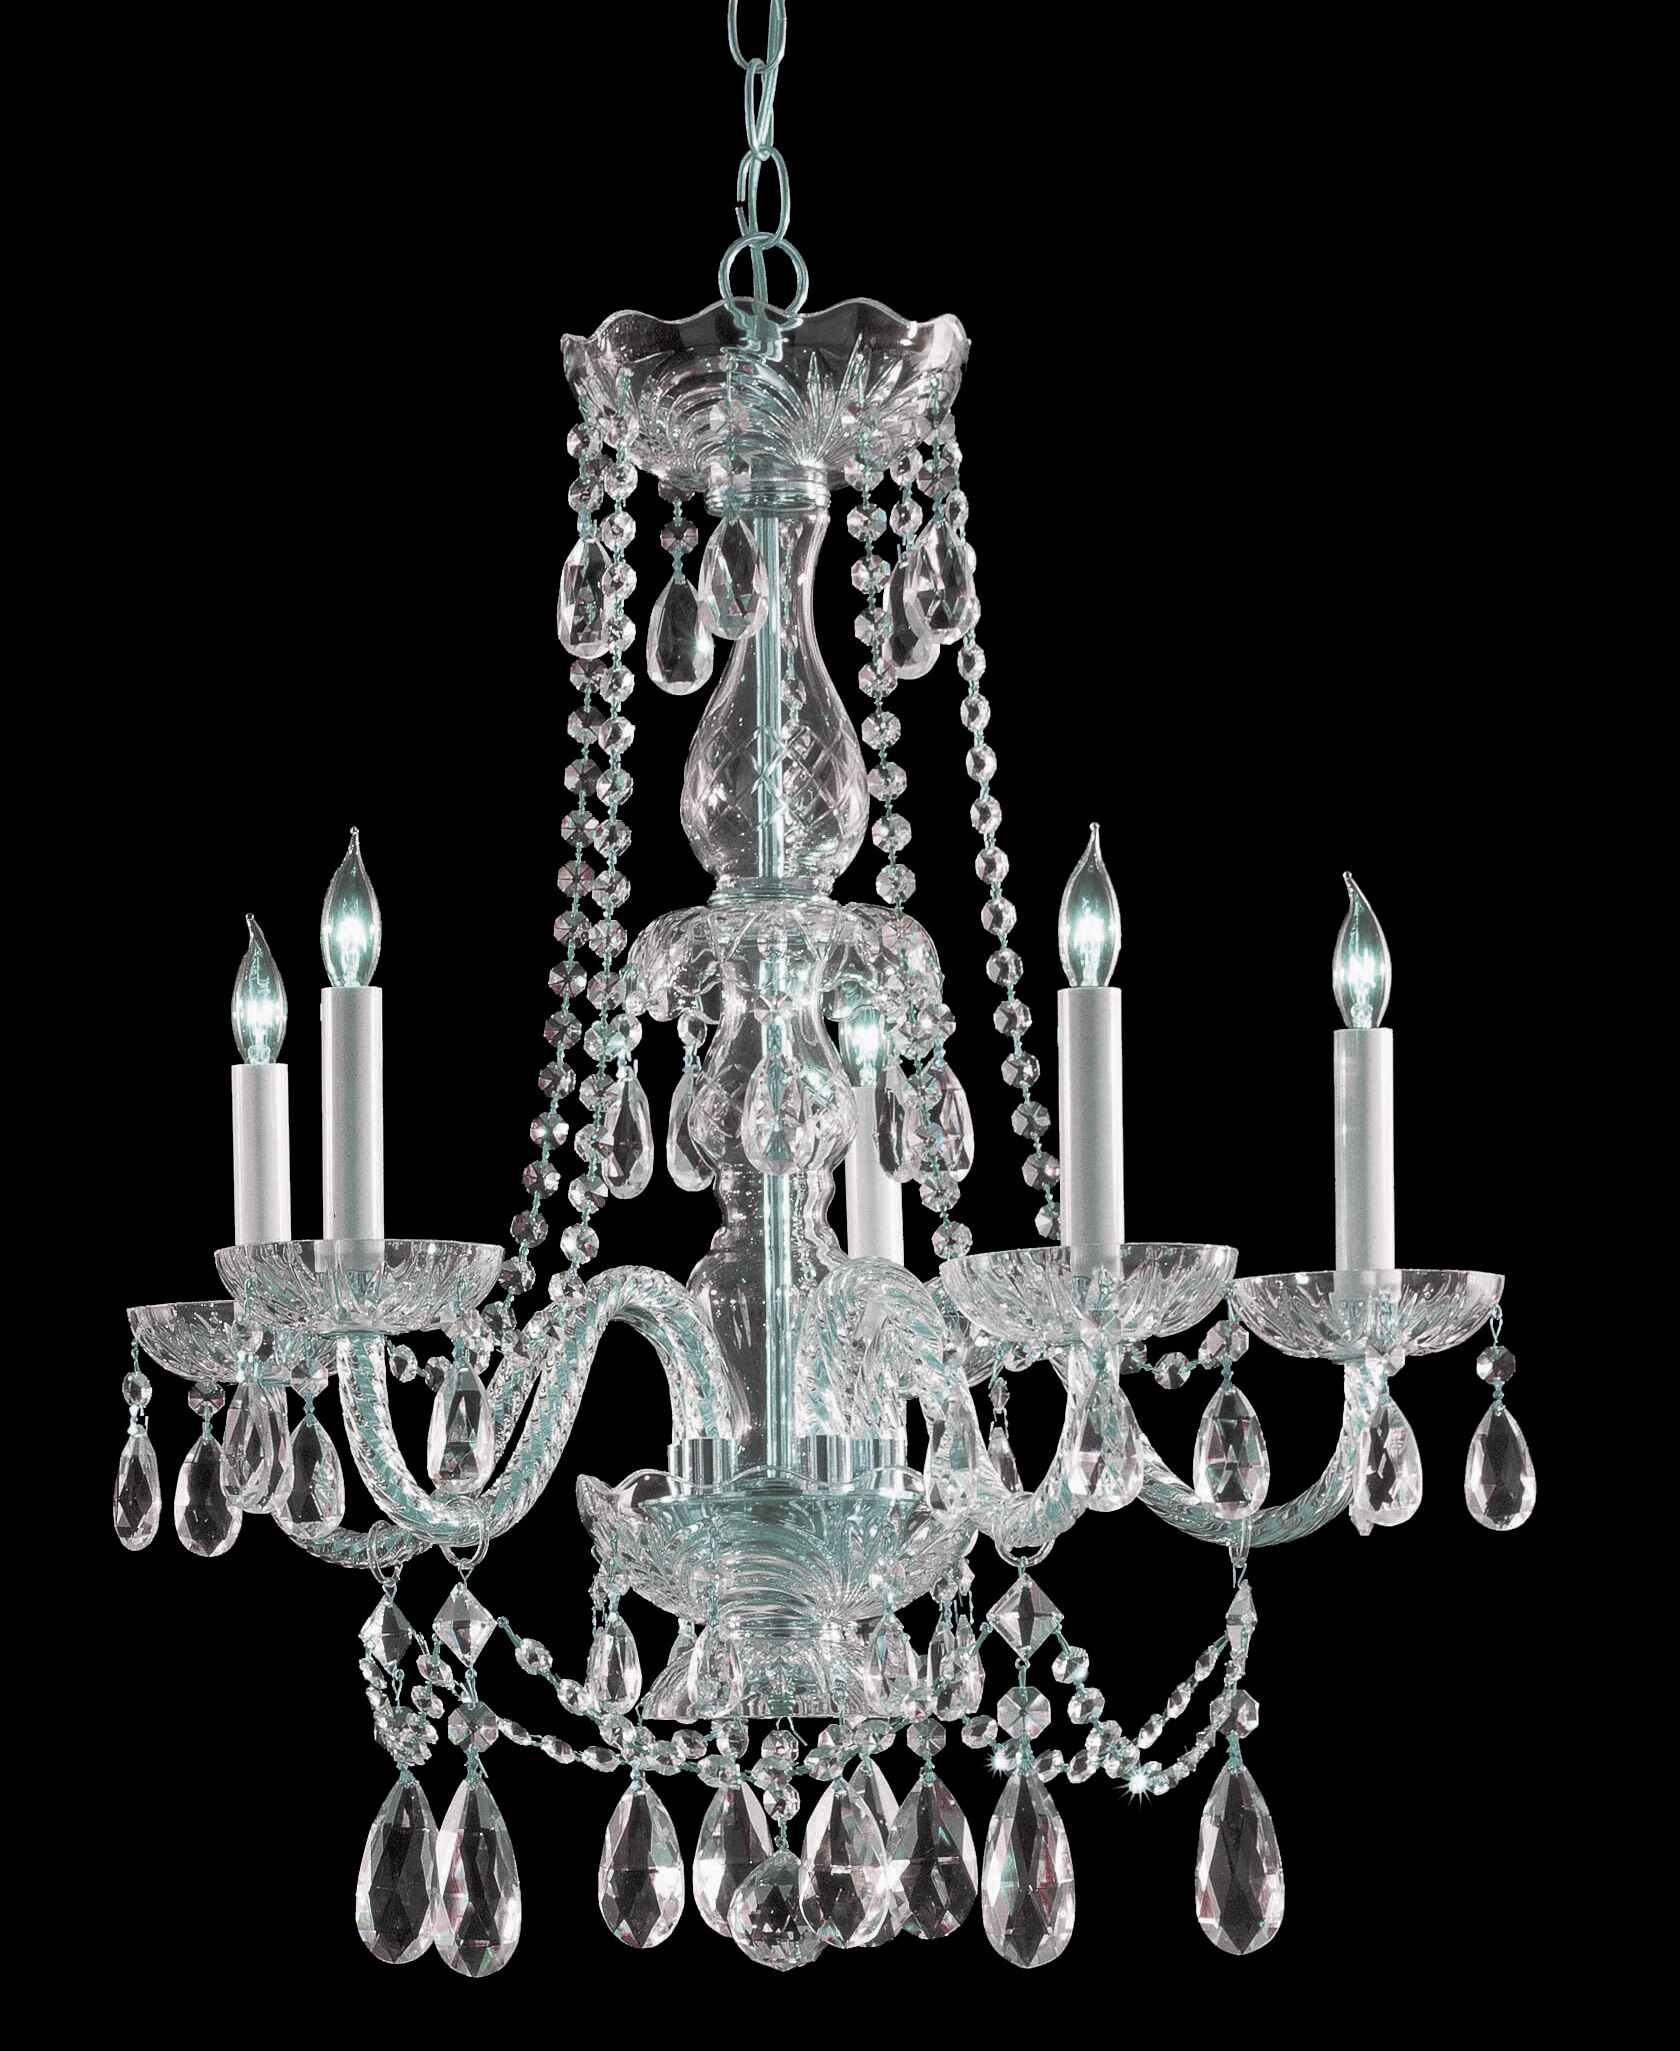 Careen Traditional 5-Light Candle Style Chandelier Finish: Polished Chrome, Crystal Type: Swarovski Elements